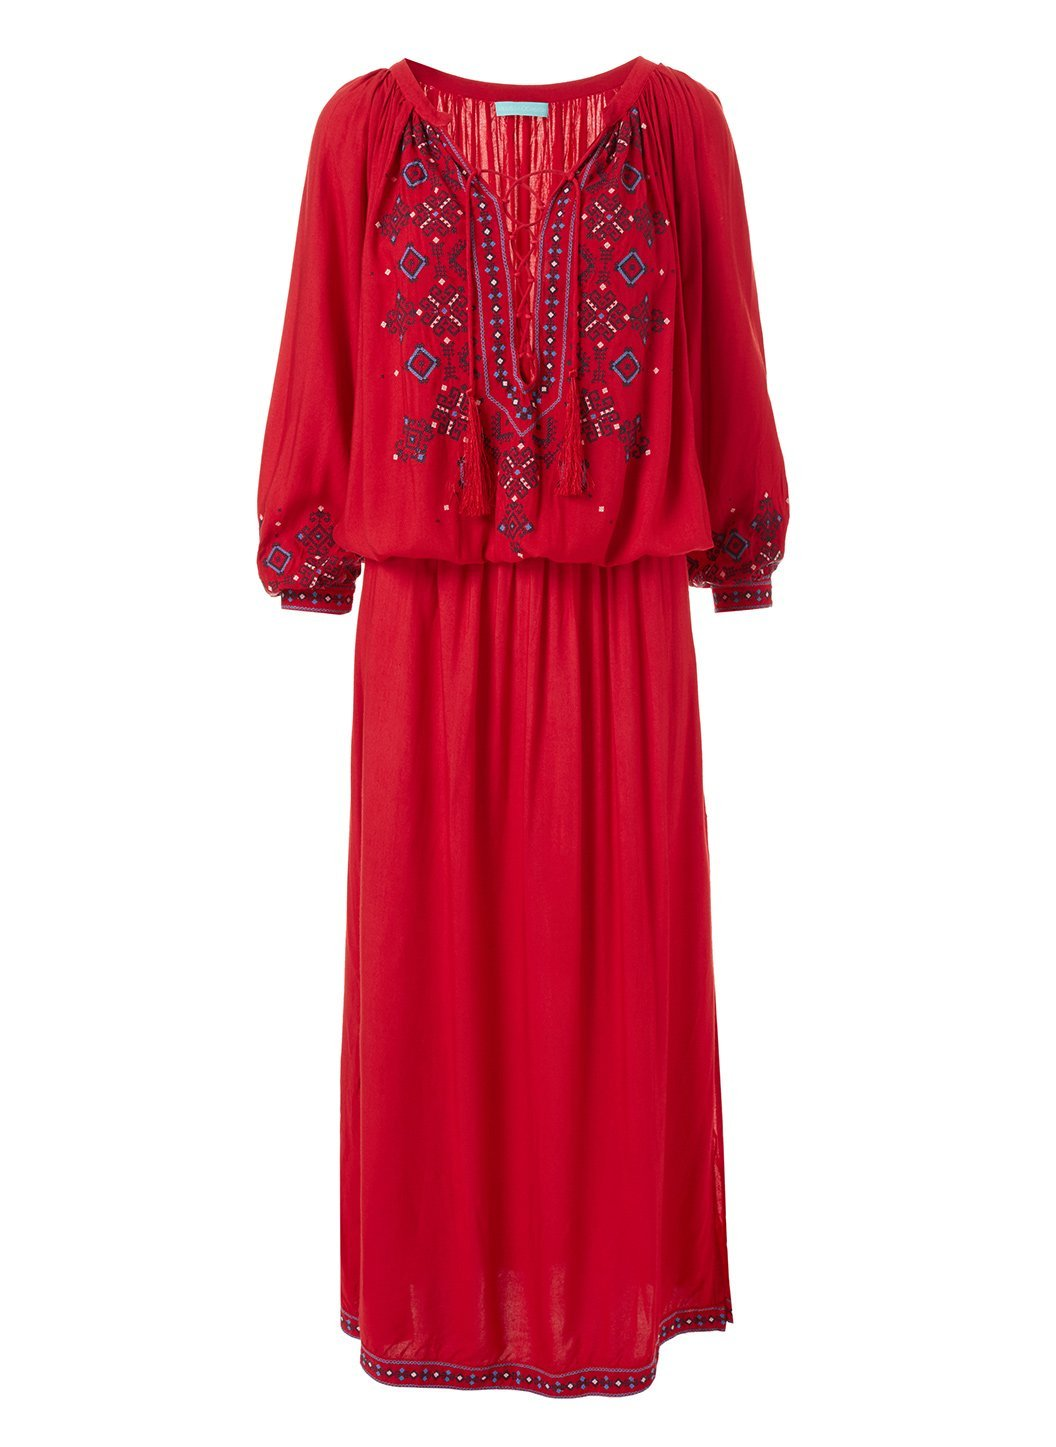 sienna red embroidered 34sleeve maxi dress 2019